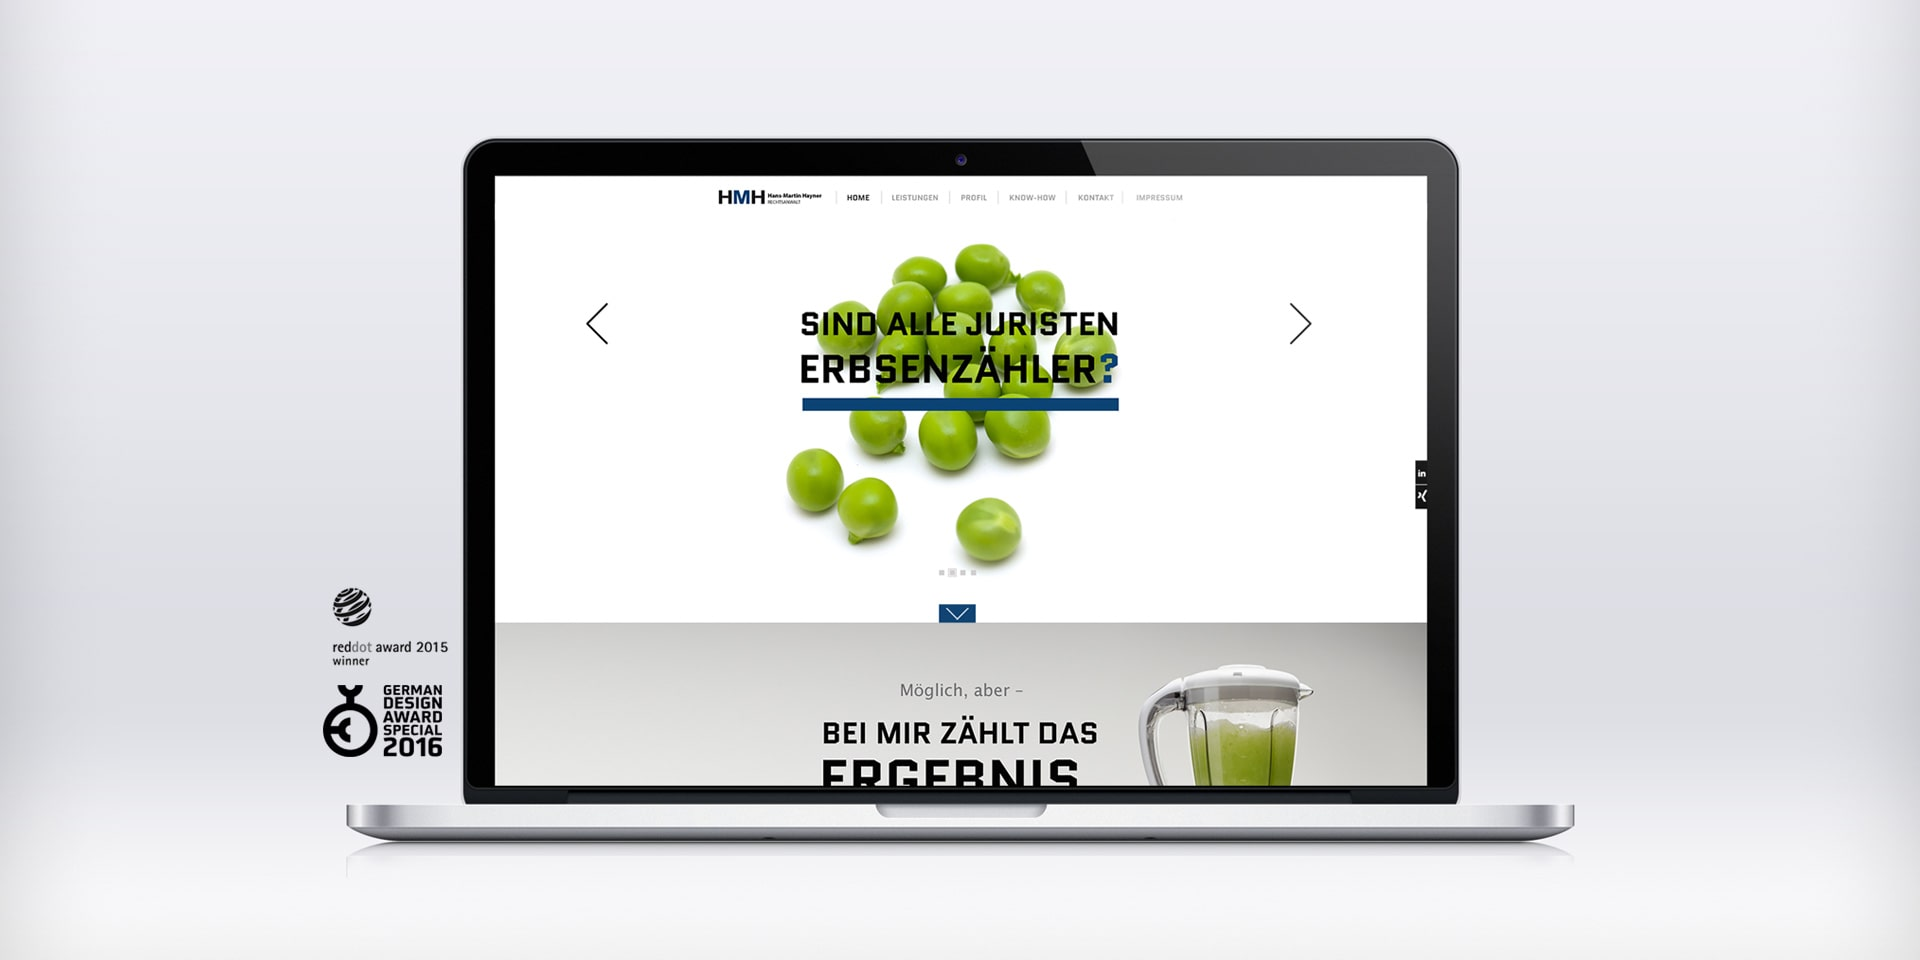 mobile Website Design RA HMH - R211 Agentur Düsseldorf